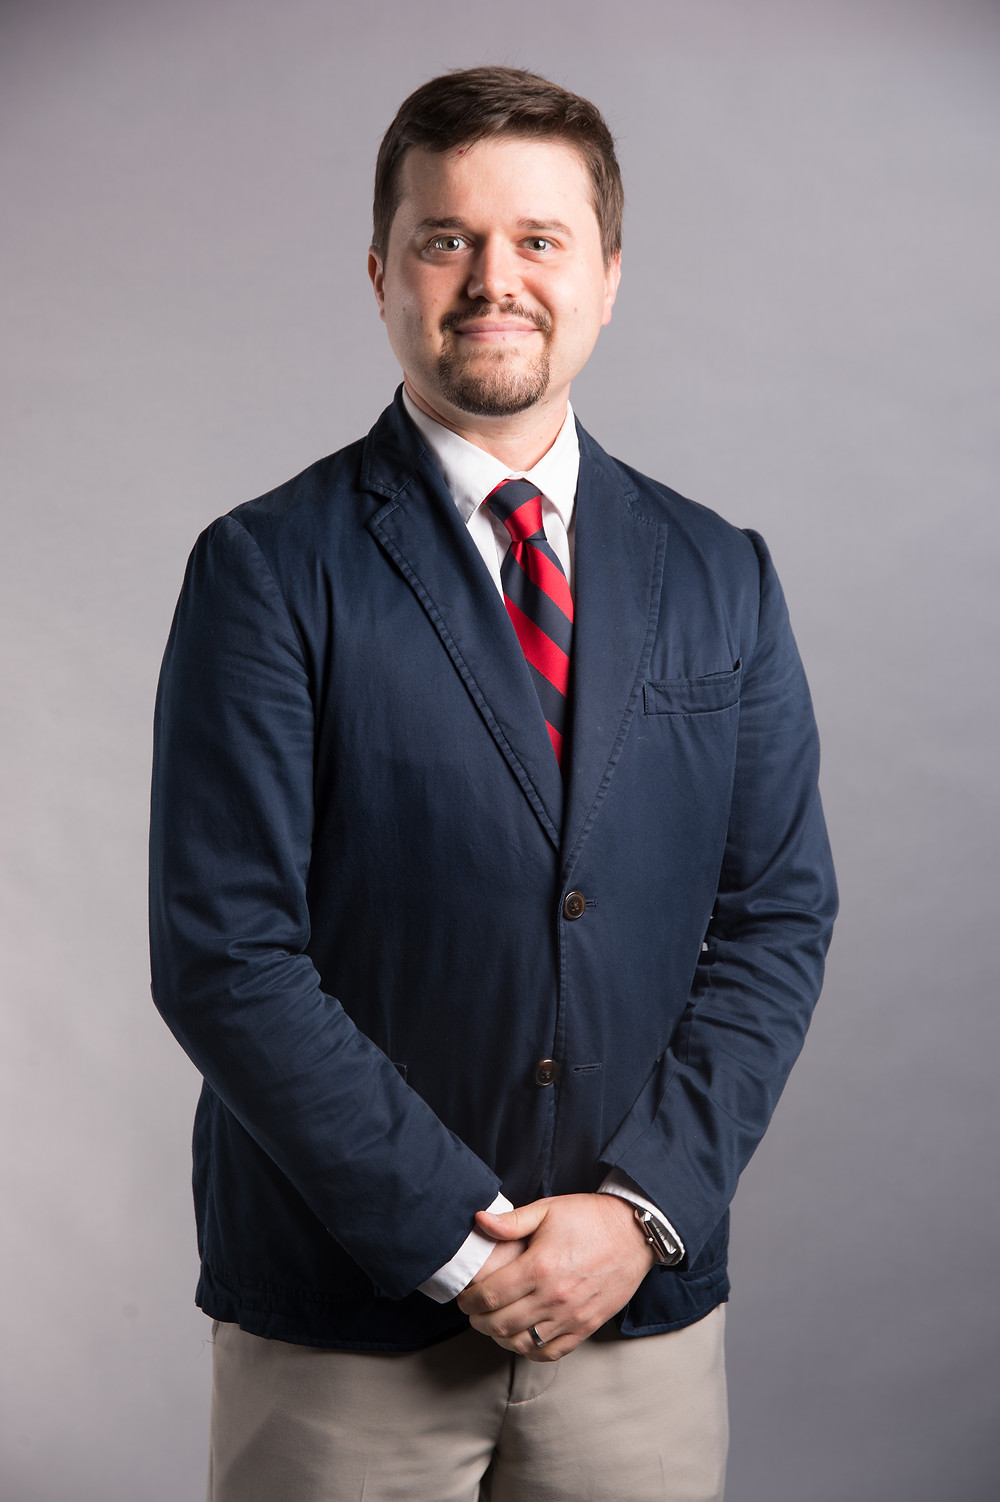 Lincoln B. Sloas, Ph.D., is an Assistant Professor in the School of Criminology and Criminal Justice at Florida Atlantic University.